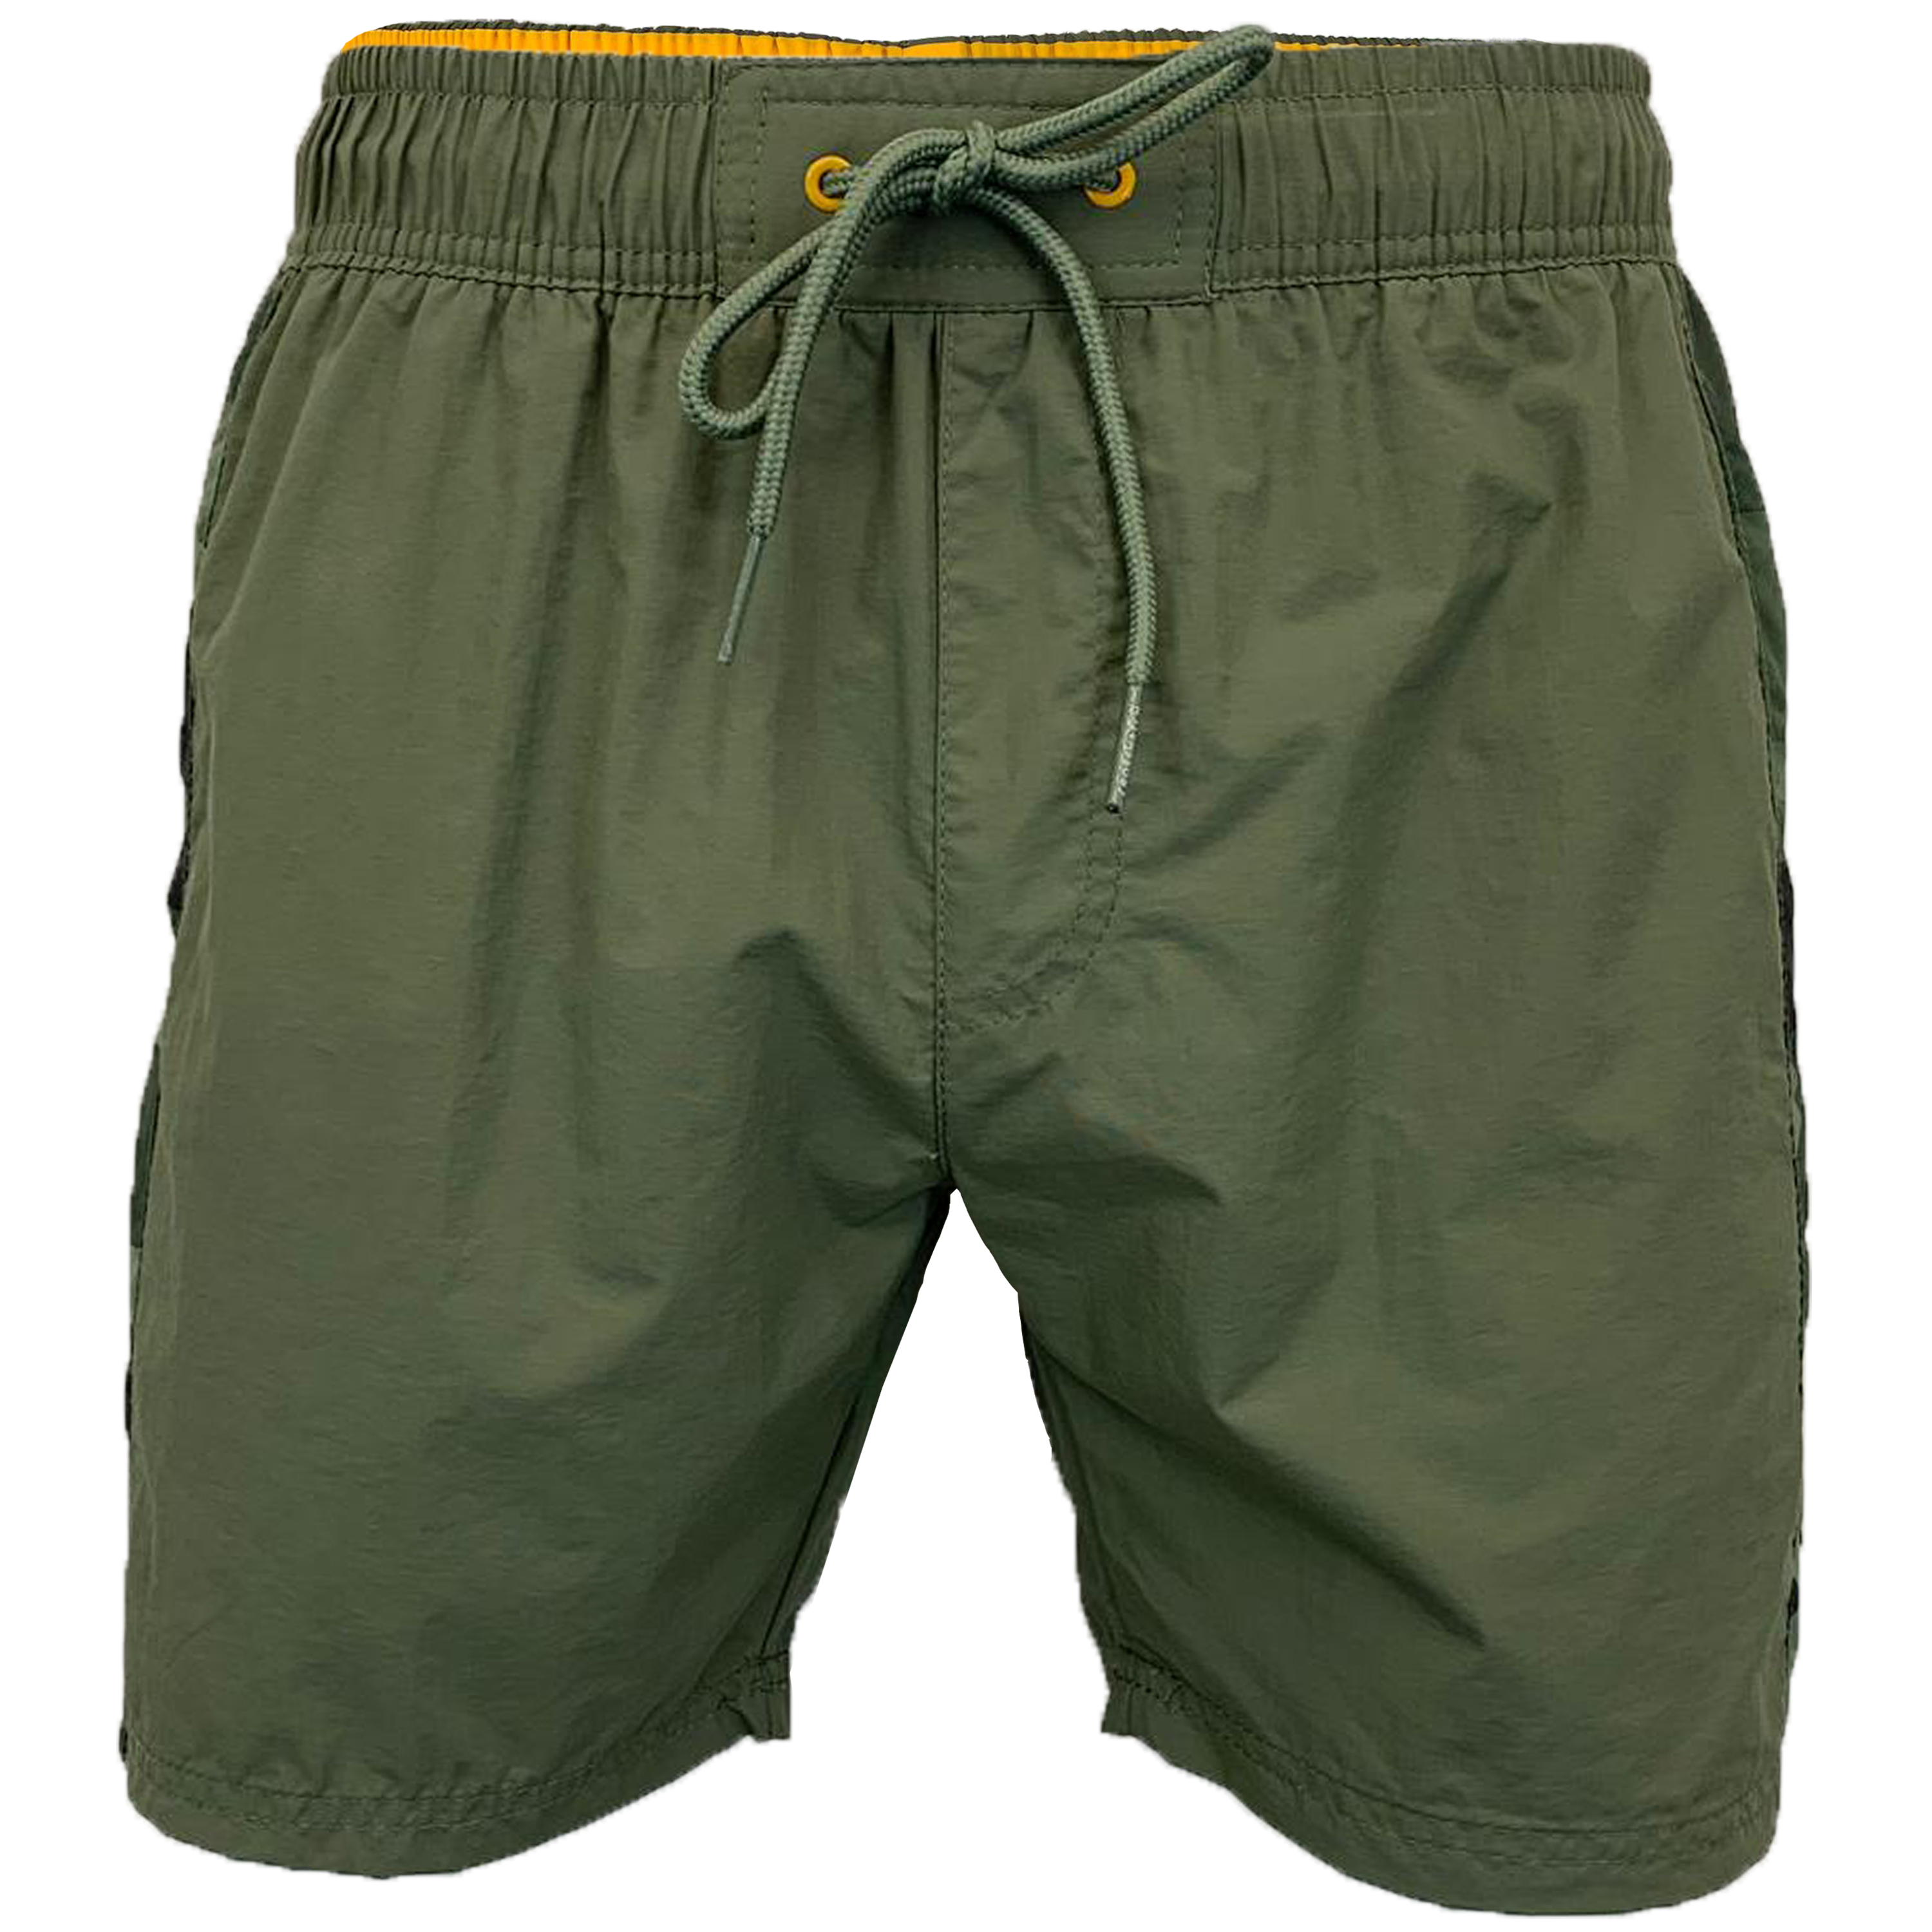 Mens-Camouflage-Swim-Shorts-Crosshatch-Army-Military-Knee-Length-Casual-Summer thumbnail 19